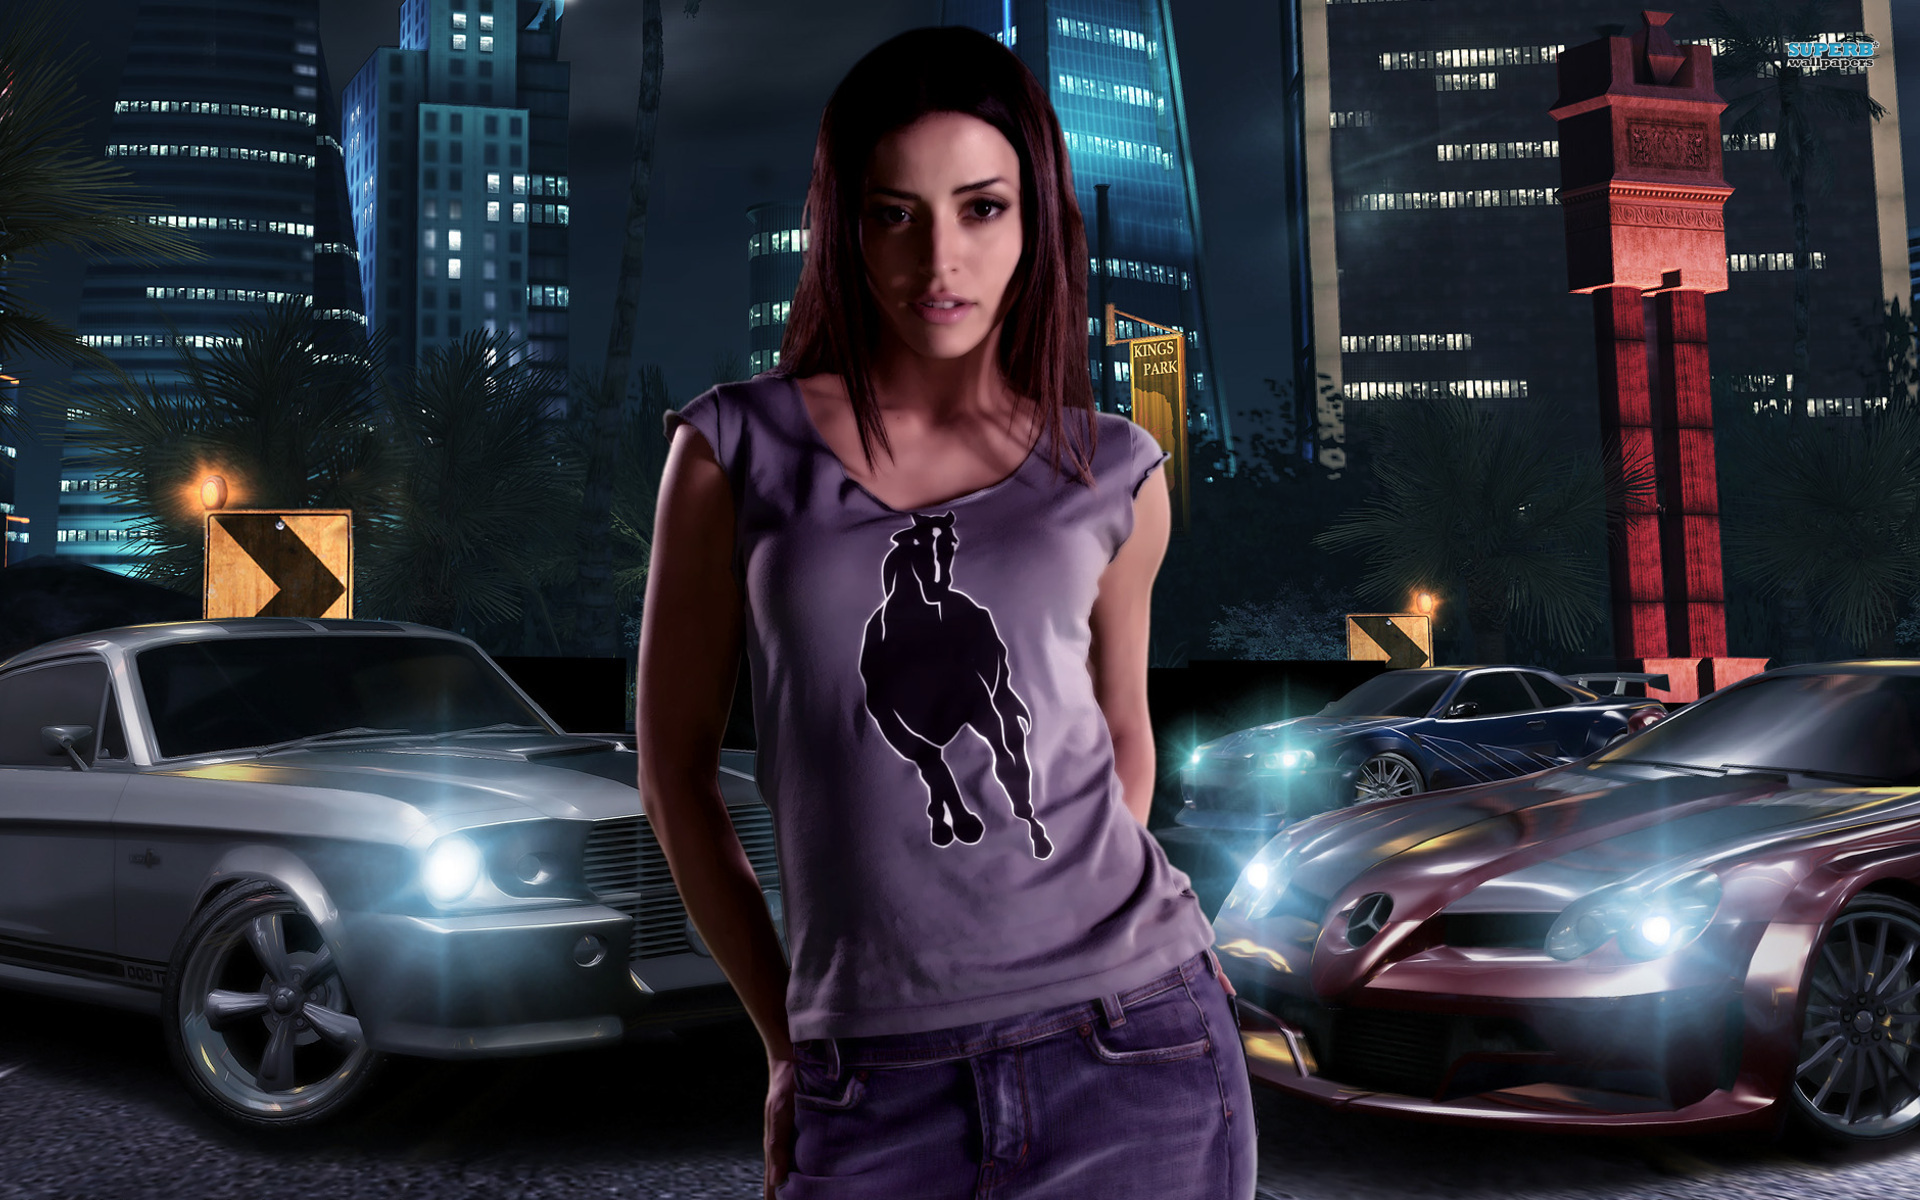 Carbon Need For Speed Game 706409 Wallpaper wallpaper download